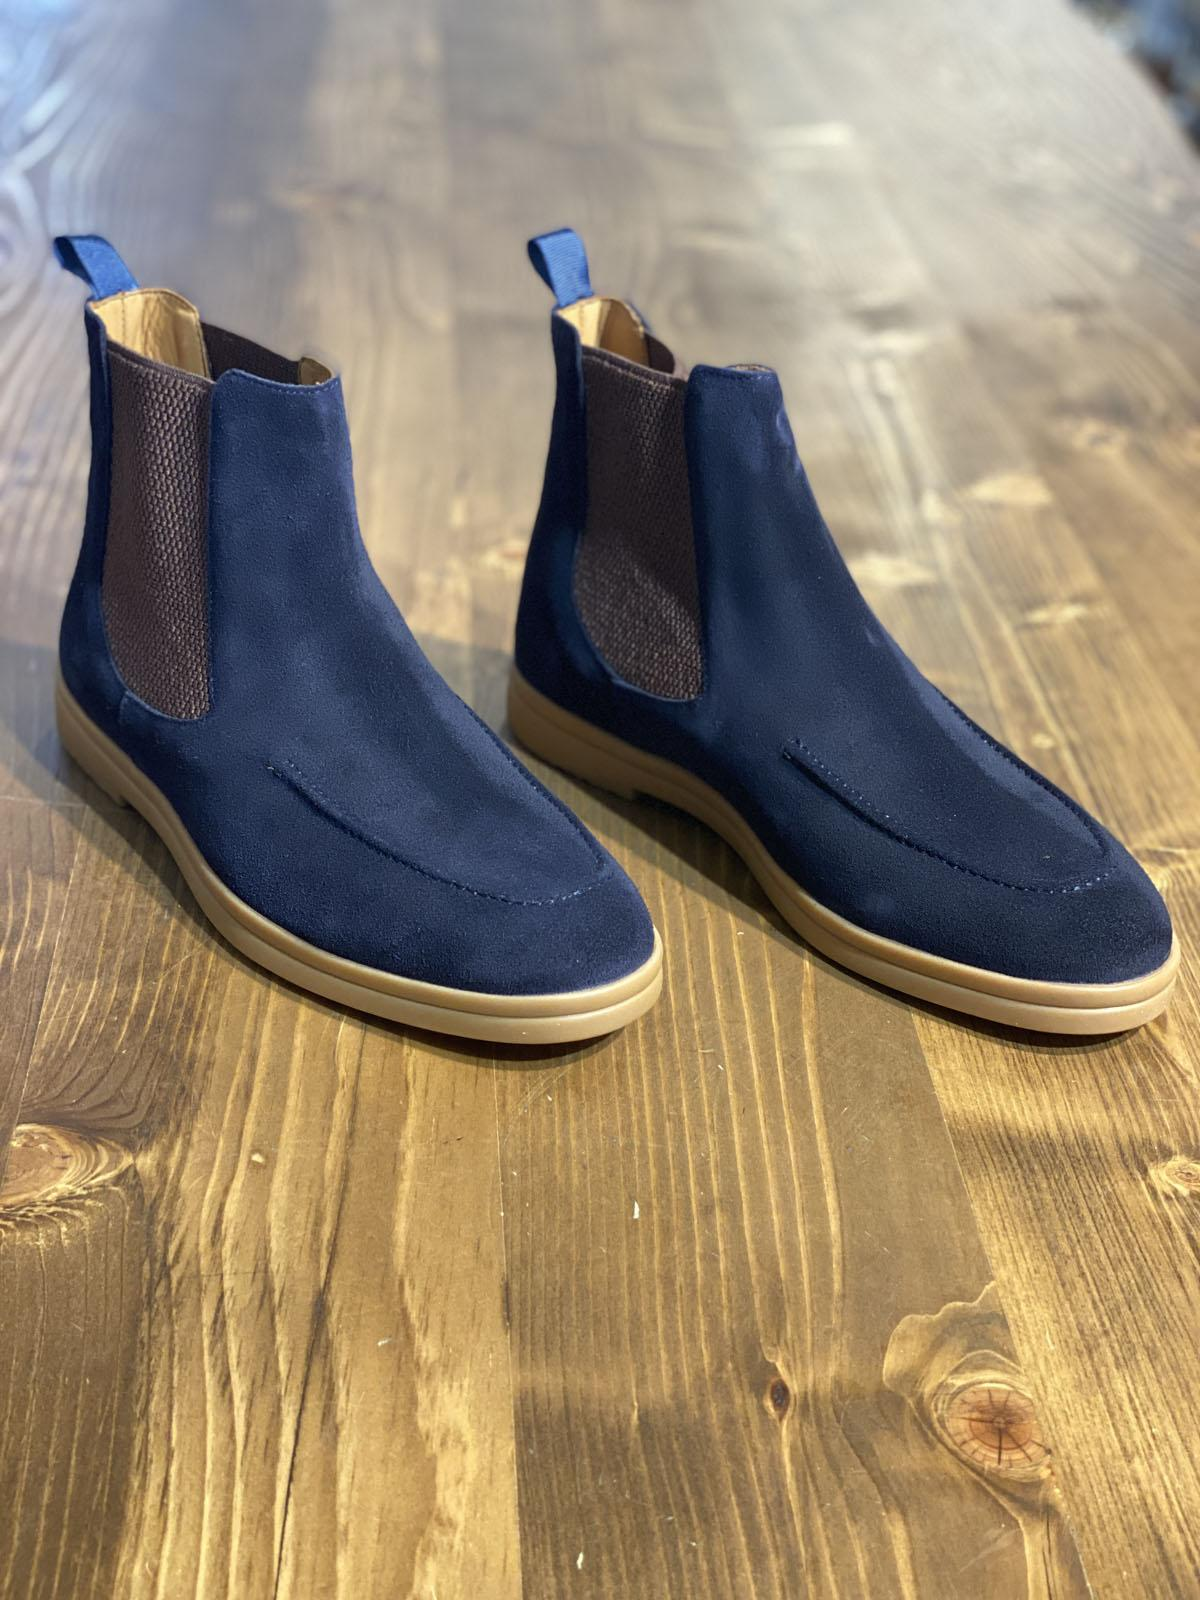 Vicenza Calf Leather Boots Navy Blue